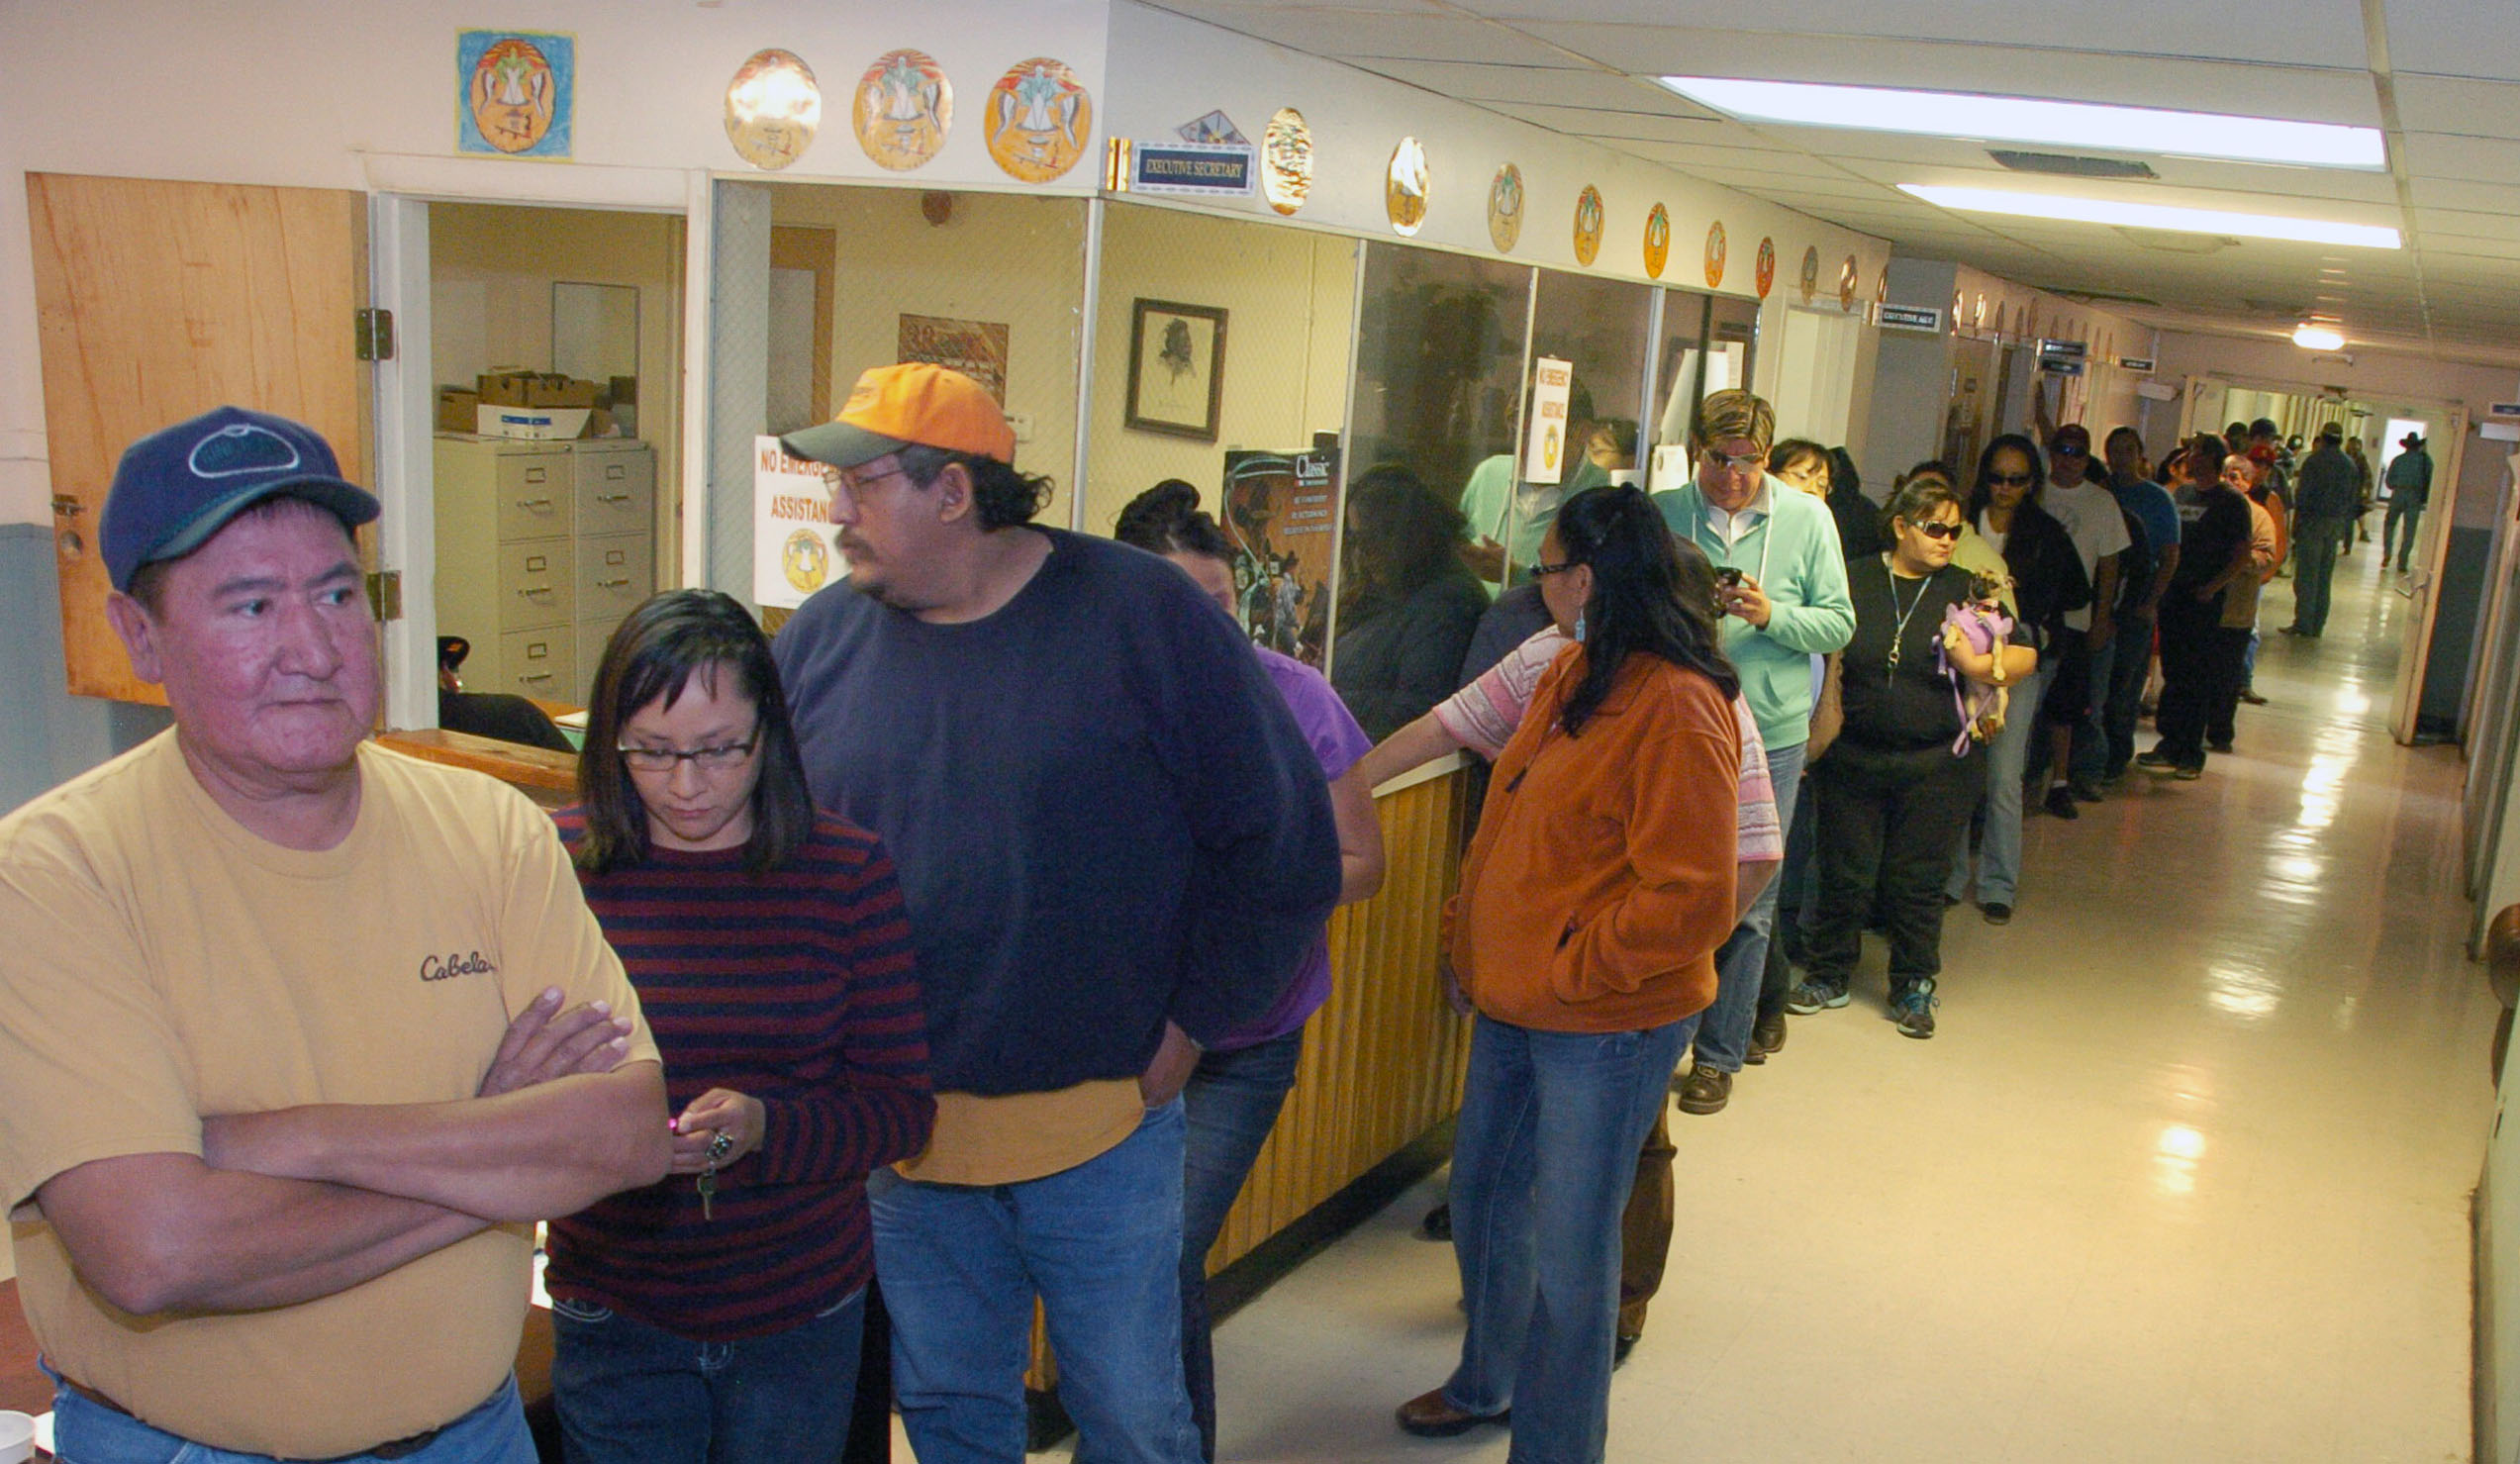 Crow Tribe employees line up to receive their paychecks. These are some of more than 300 tribal employees who were furloughed during the federal government shutdown.